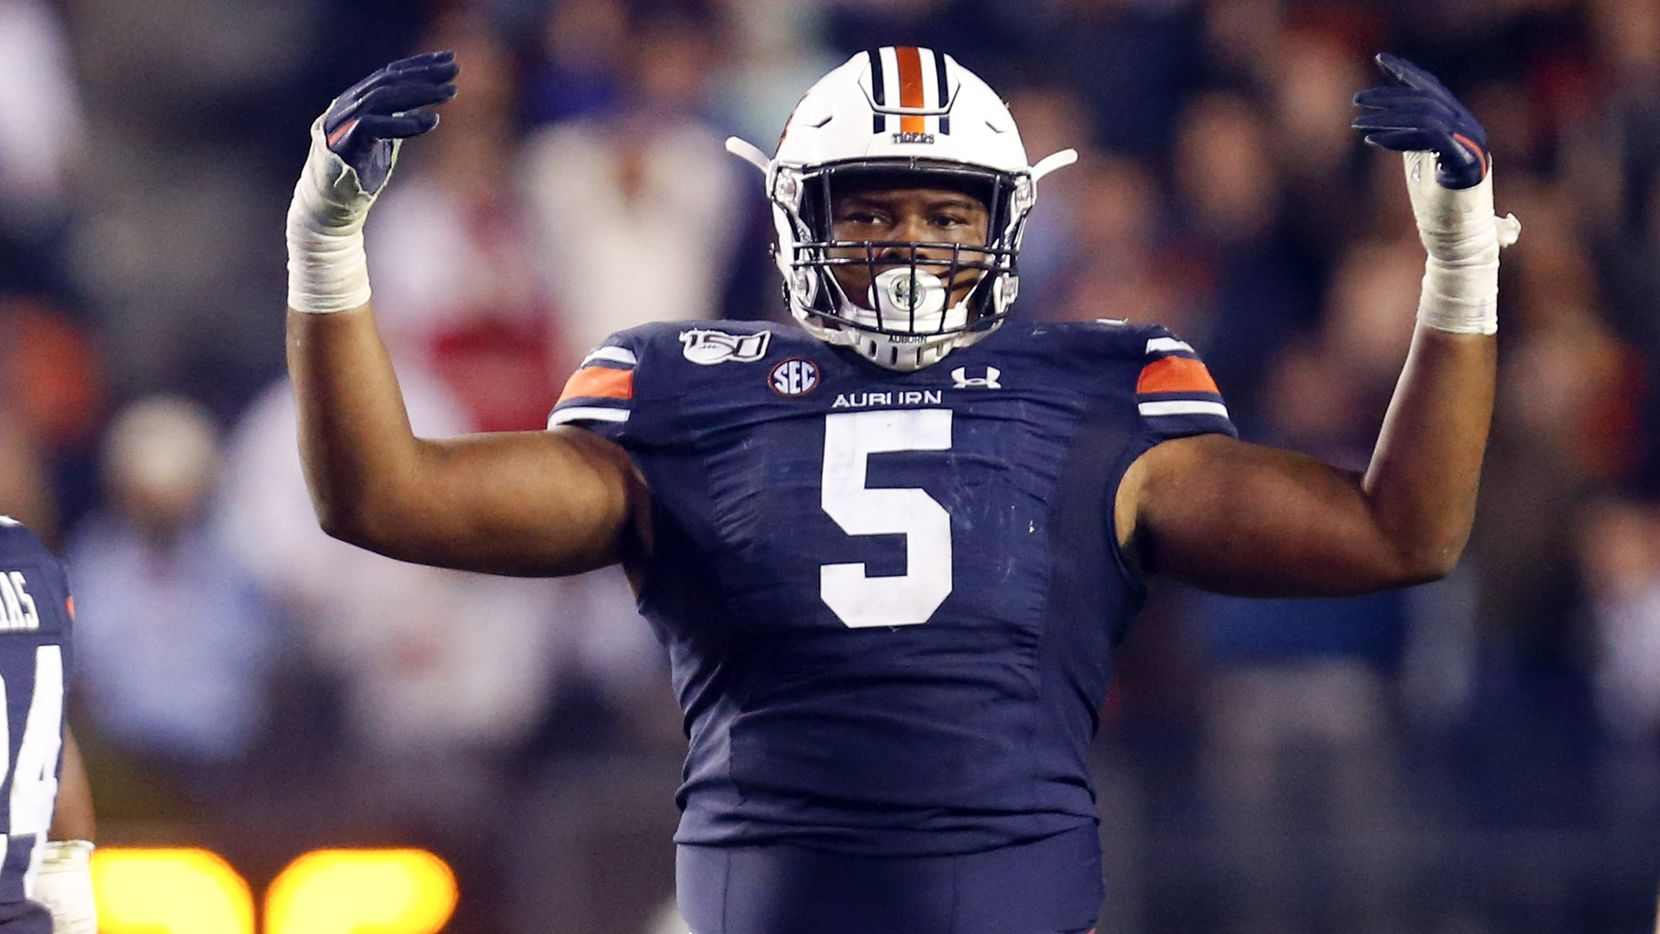 Auburn defensive tackle Derrick Brown (5) reacts after a stop against Georgia during the second half of an NCAA college football game, Saturday, Nov. 16, 2019, in Auburn, Ala. (AP Photo/Butch Dill)